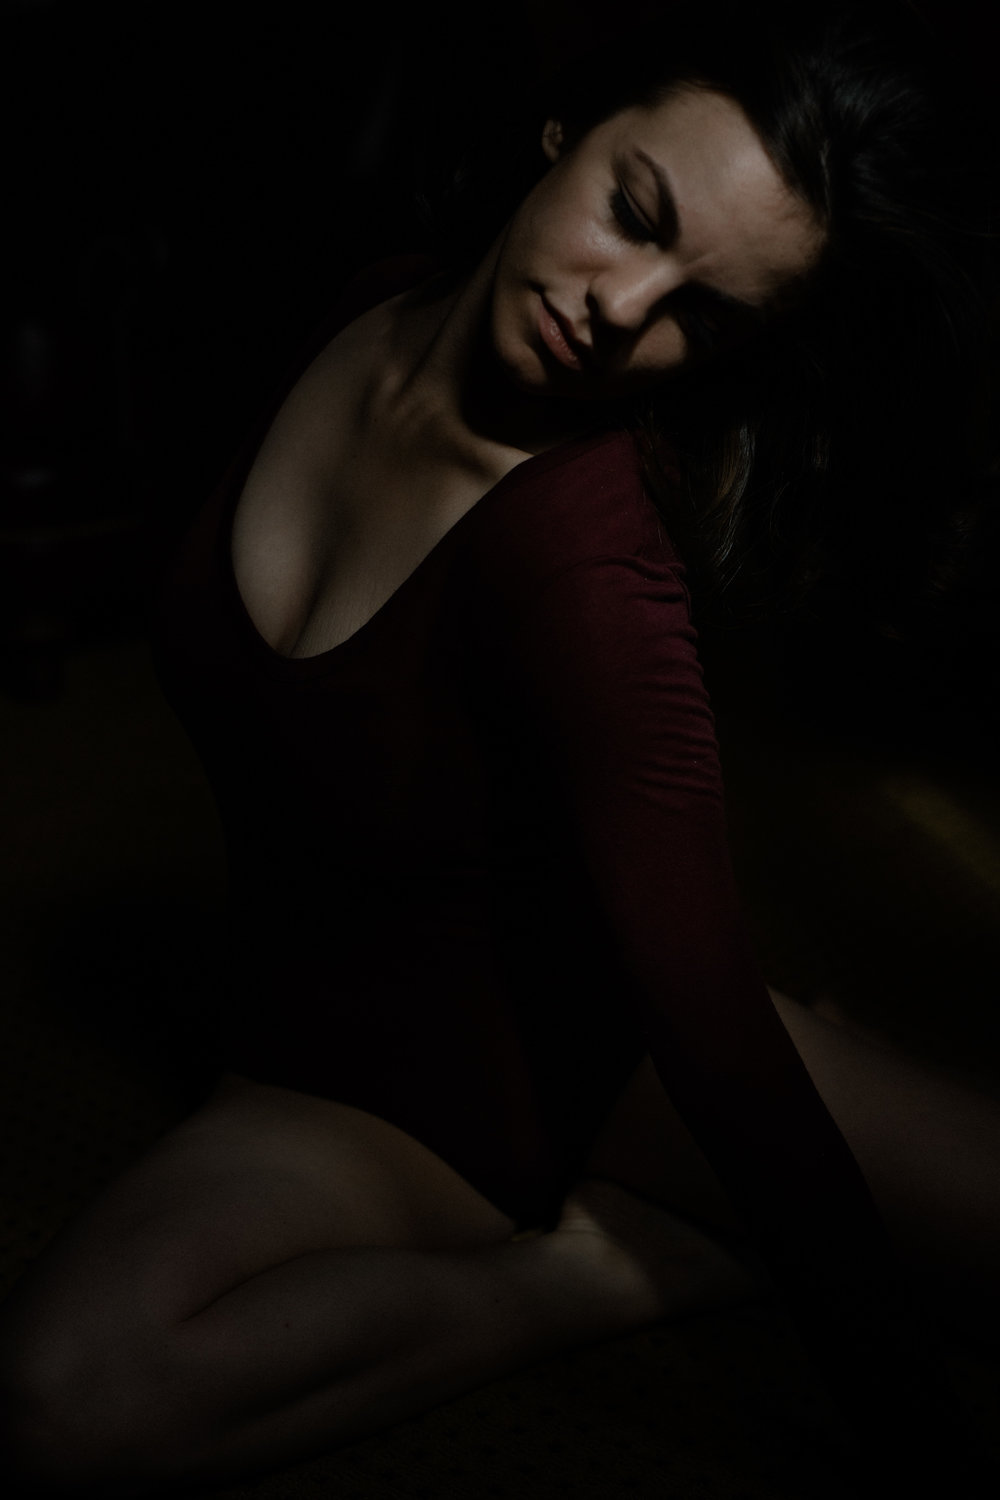 a portrait of emma grimsley in a victorian airbnb in dayton, ohio. photograph by sarah rose walk of sarah rose photography. emma is sitting on the ground, and she is looking to the side, twisting her body. emma is wearing a long sleeve burgundy red bodysuit.